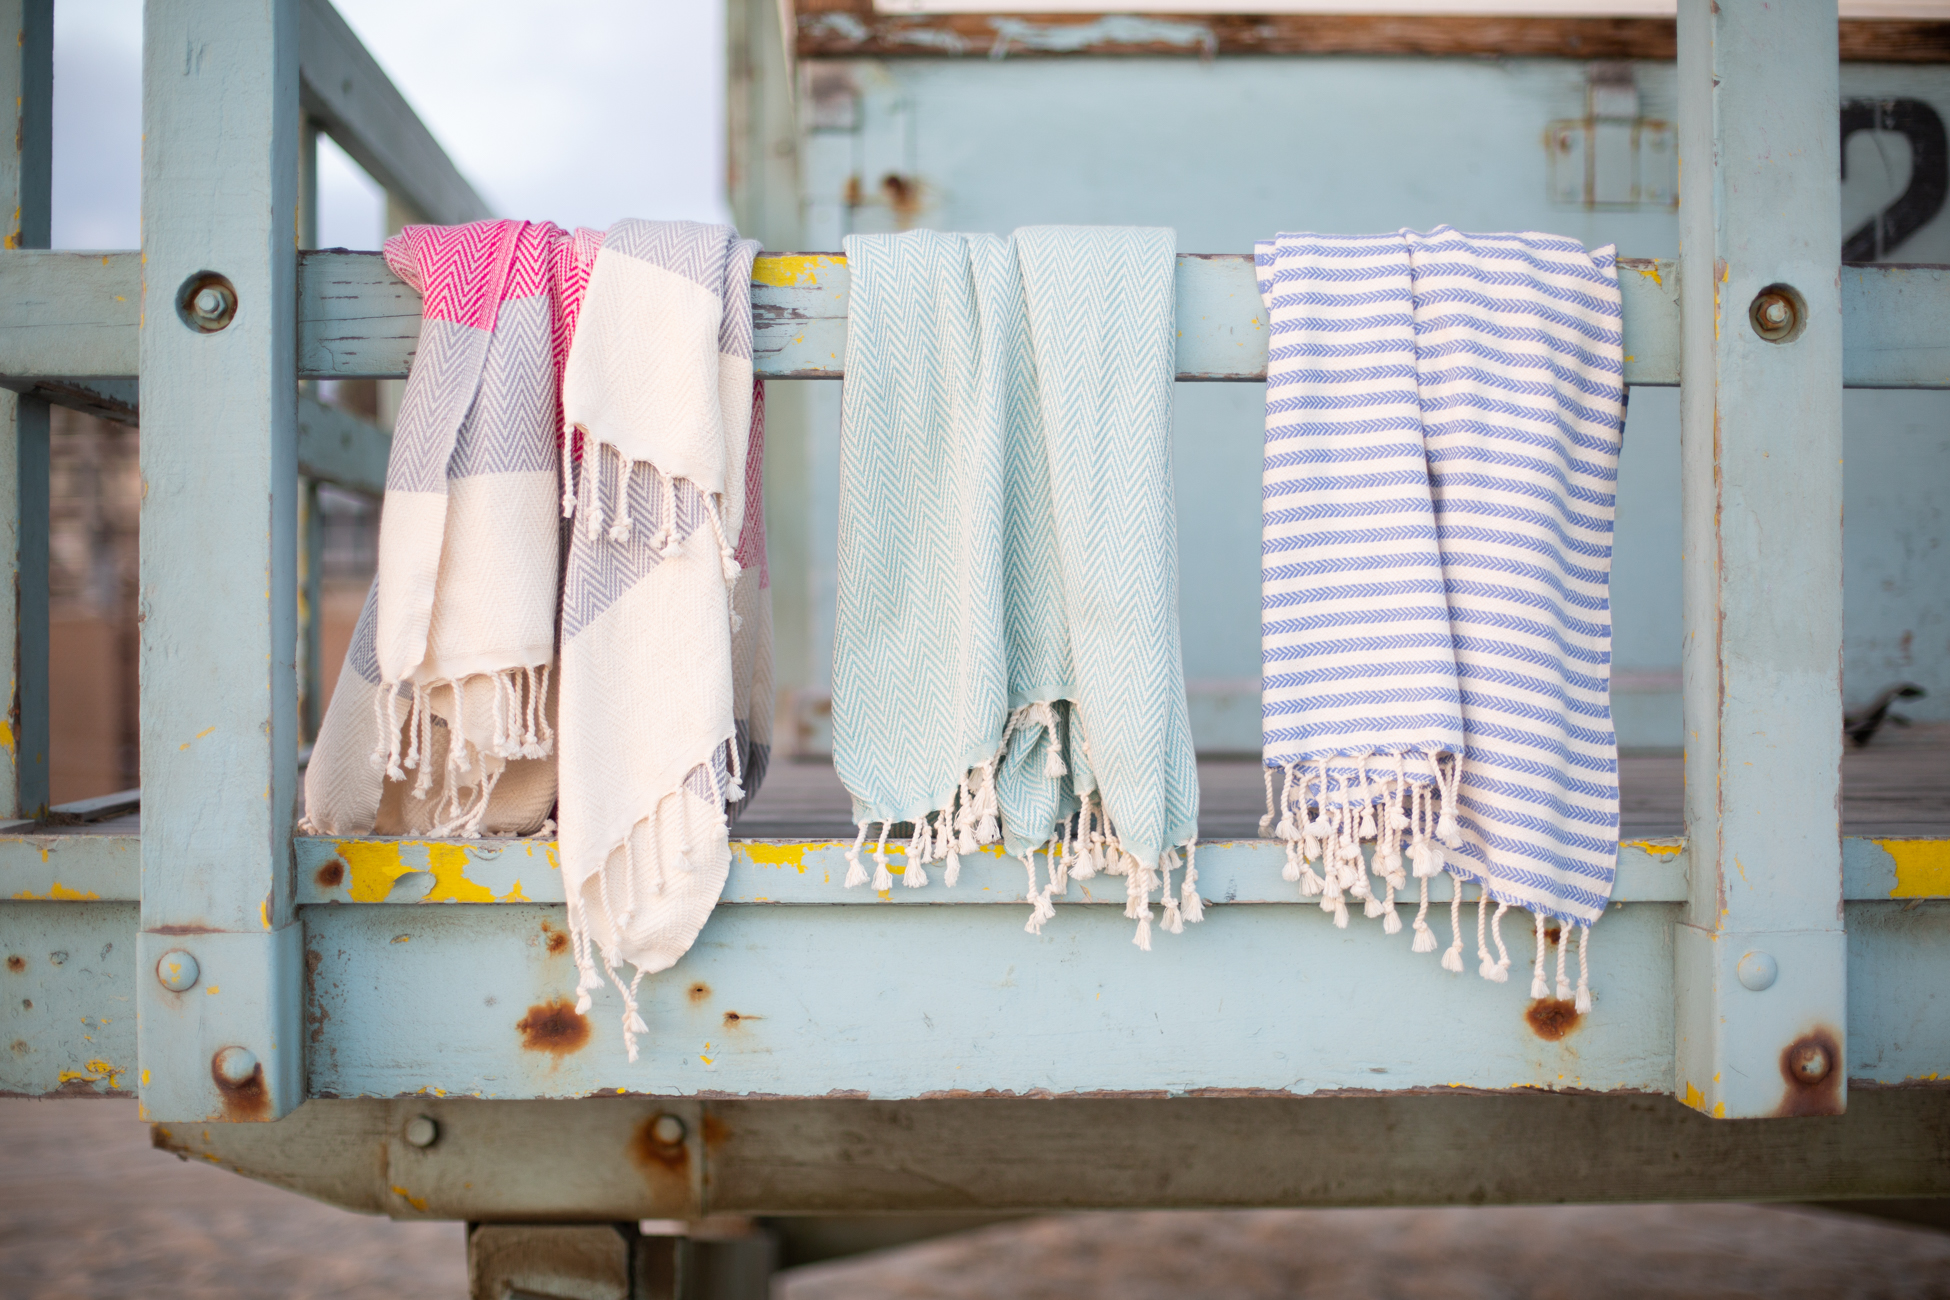 Fig 3. Turkish Towels on the lifeguard stand. Photograph for  Together Textiles